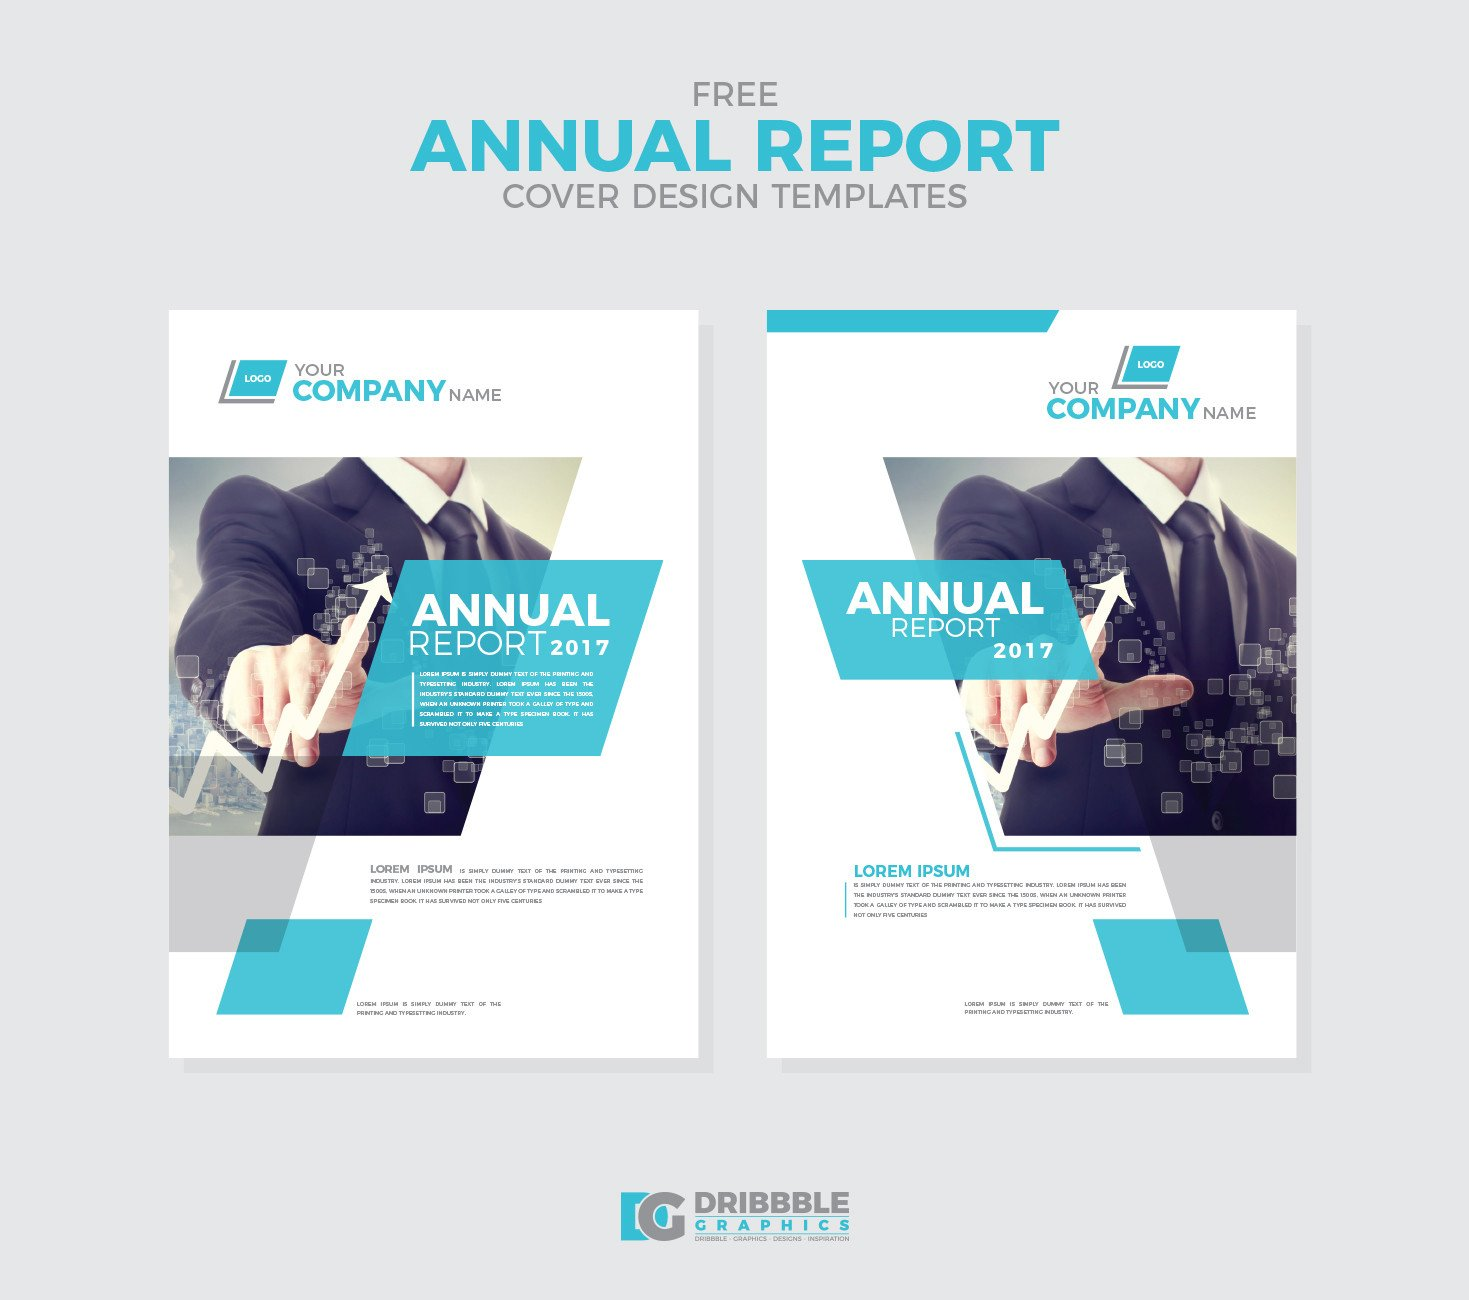 Annual Report Design Templates Free Annual Report Cover Design Templates